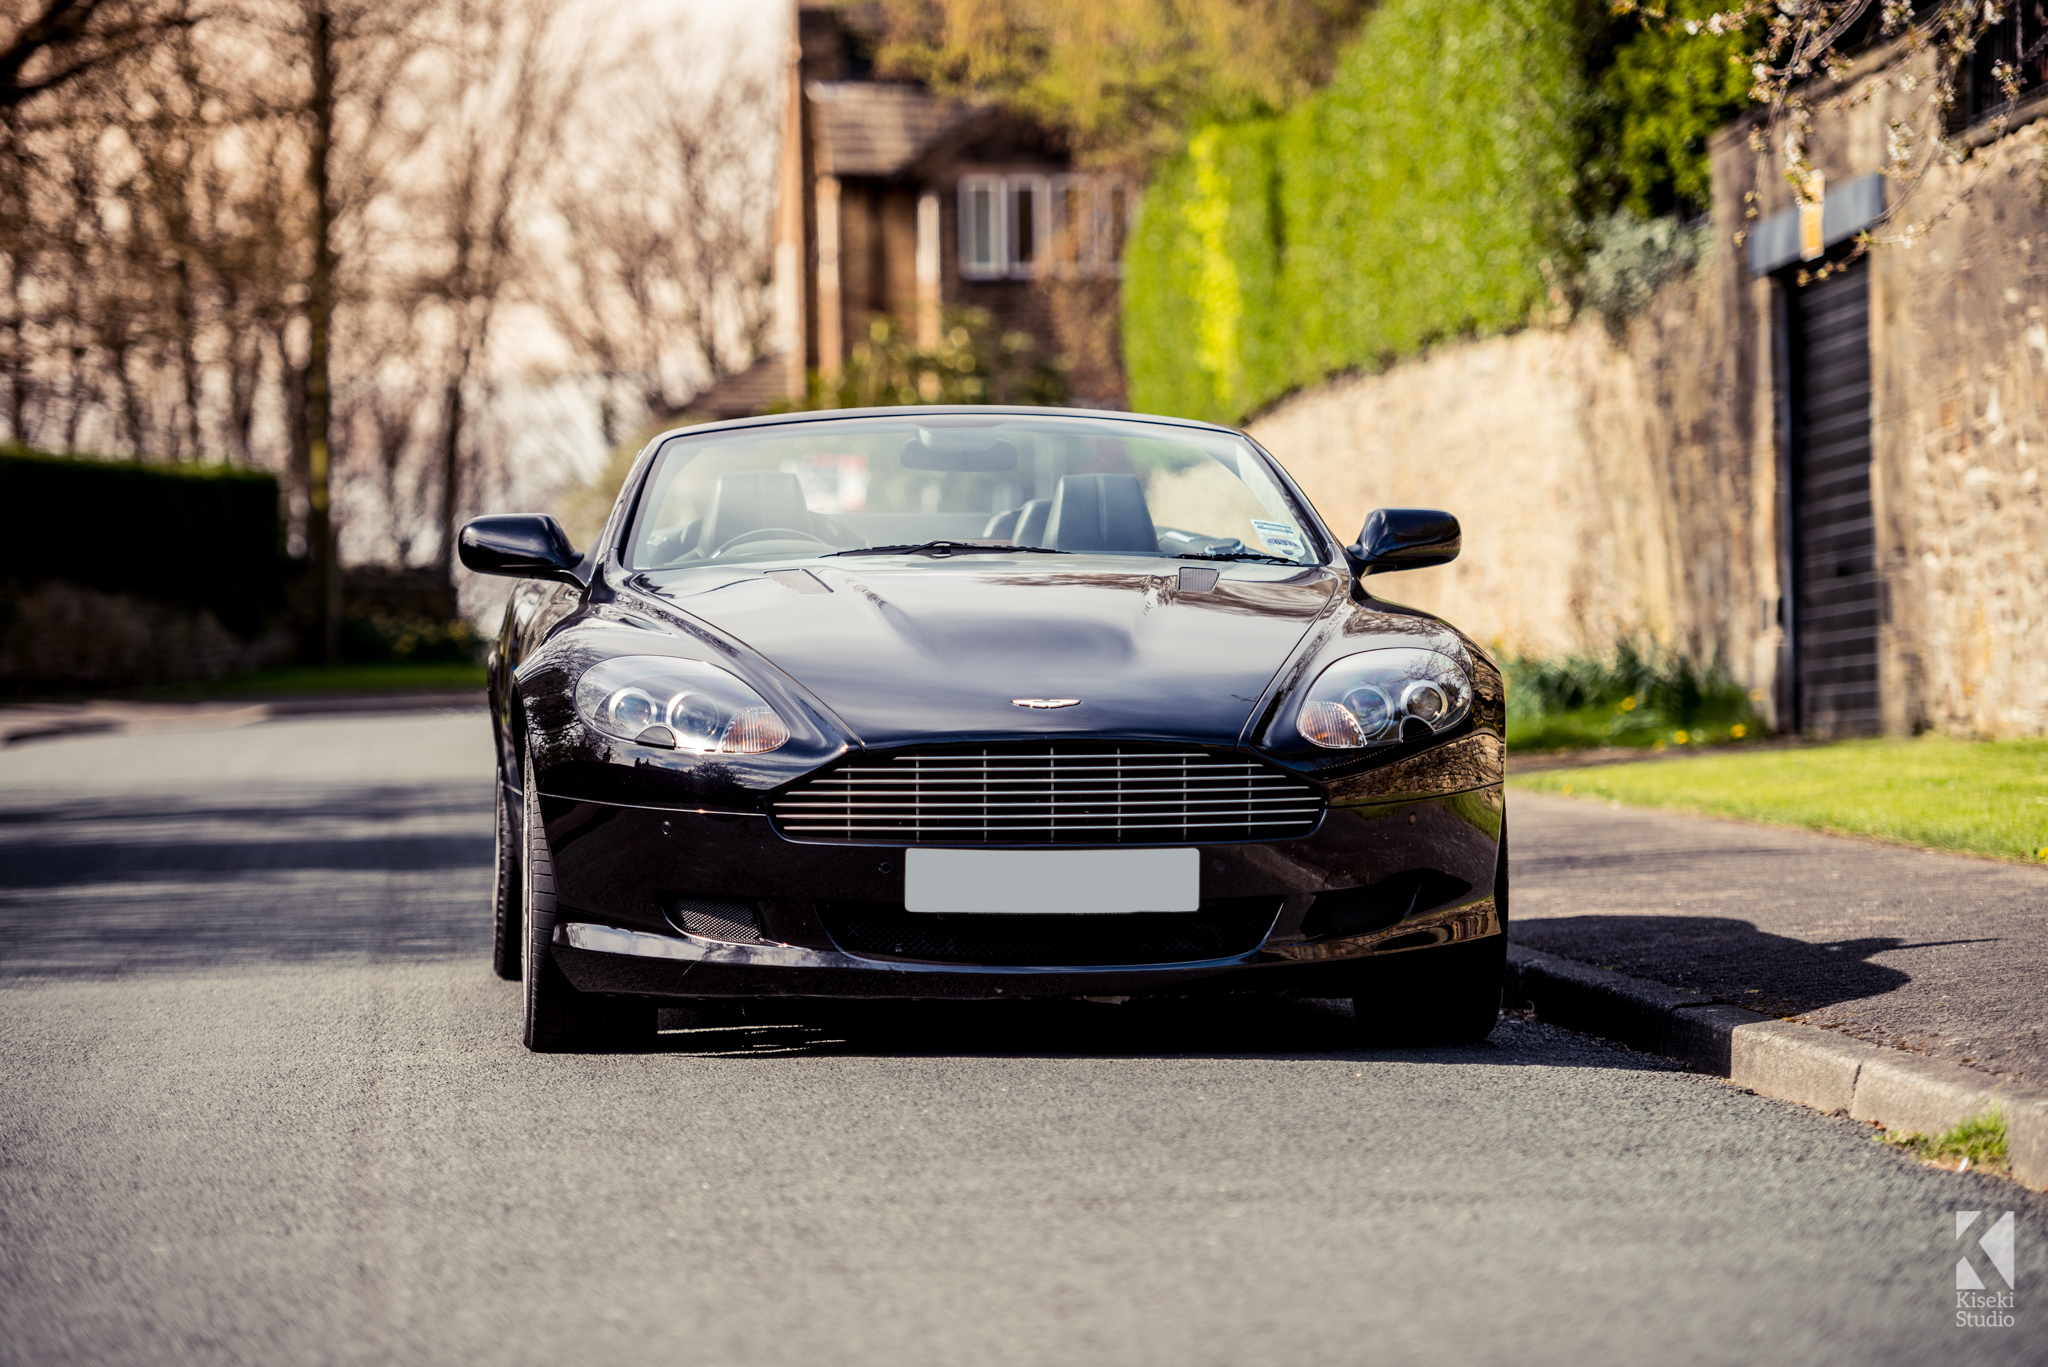 Aston Marting DB9 Volante in Black